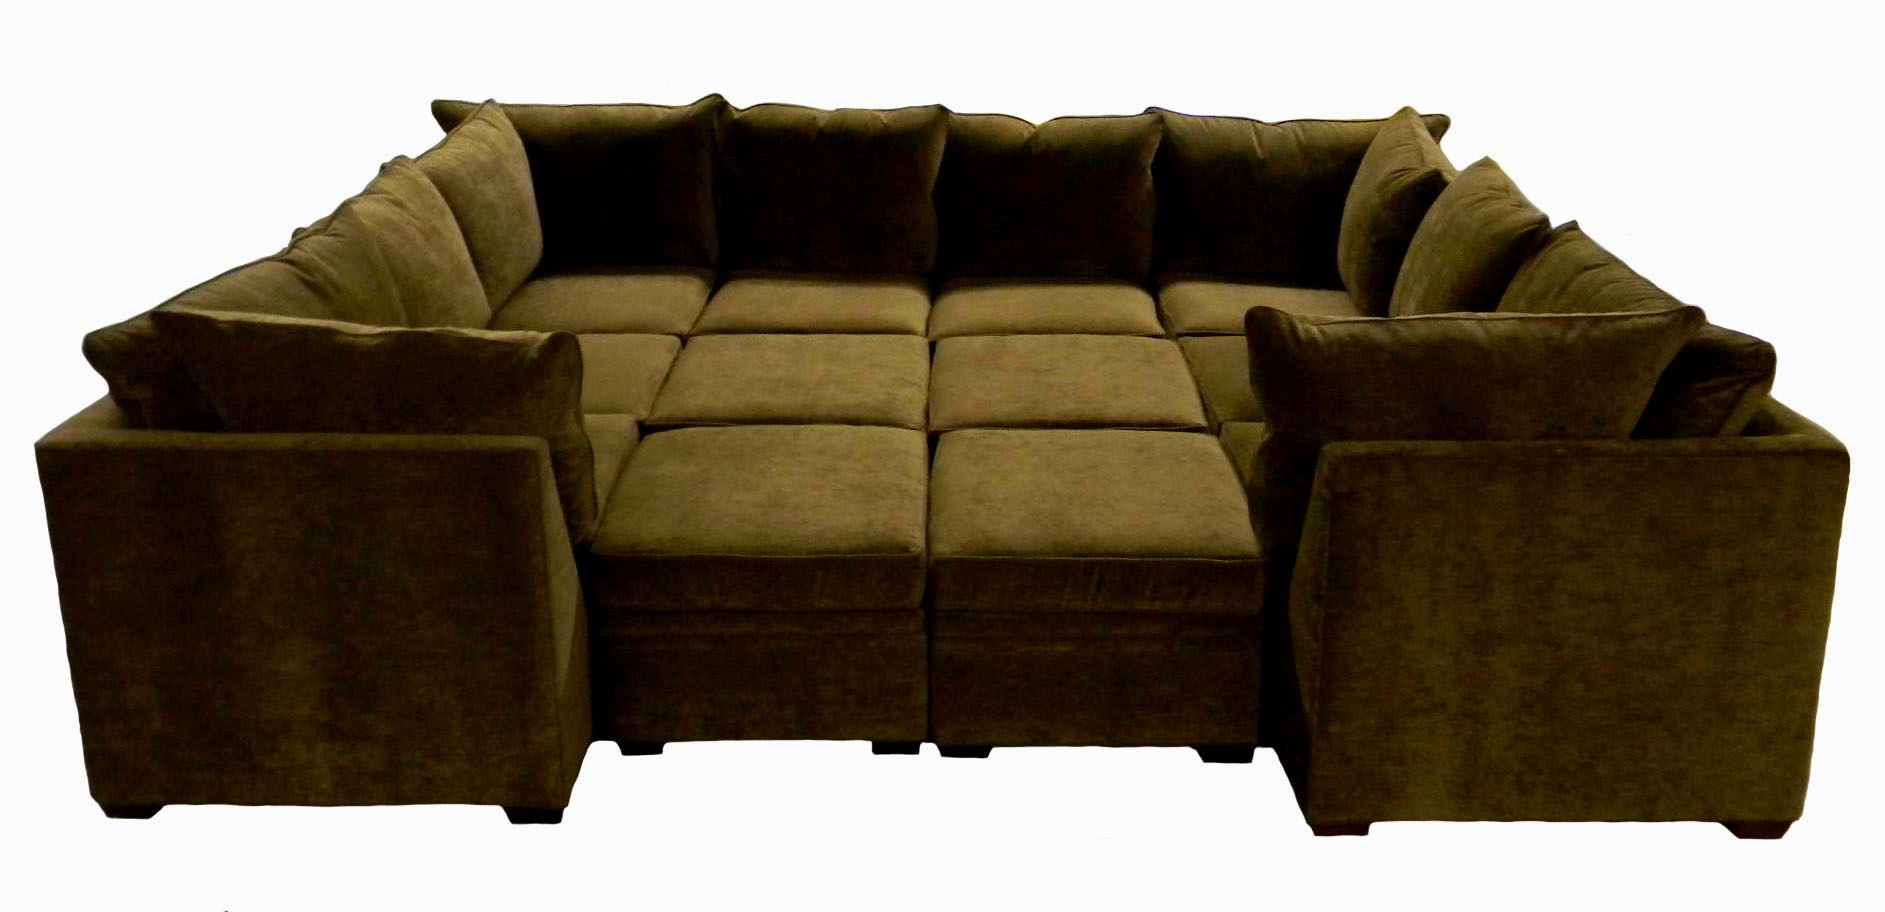 best of sectional sleeper sofa photo-Best Sectional Sleeper sofa Design